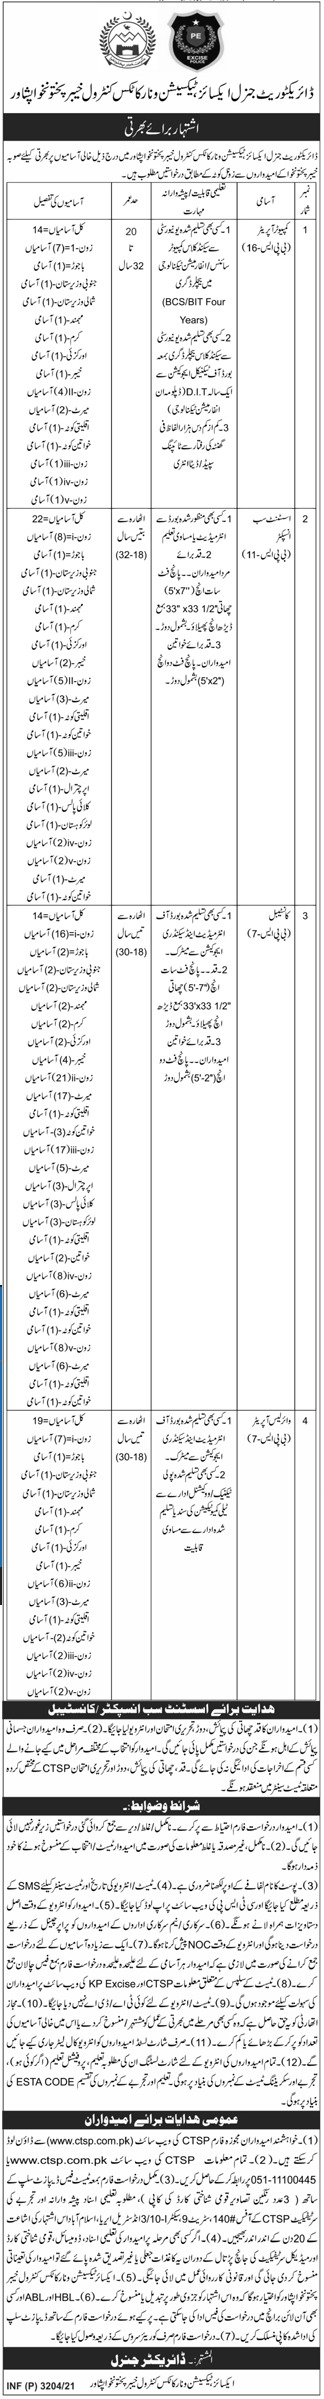 Excise Taxation And Narcotics Control KP Jobs 2021 Via CTSP